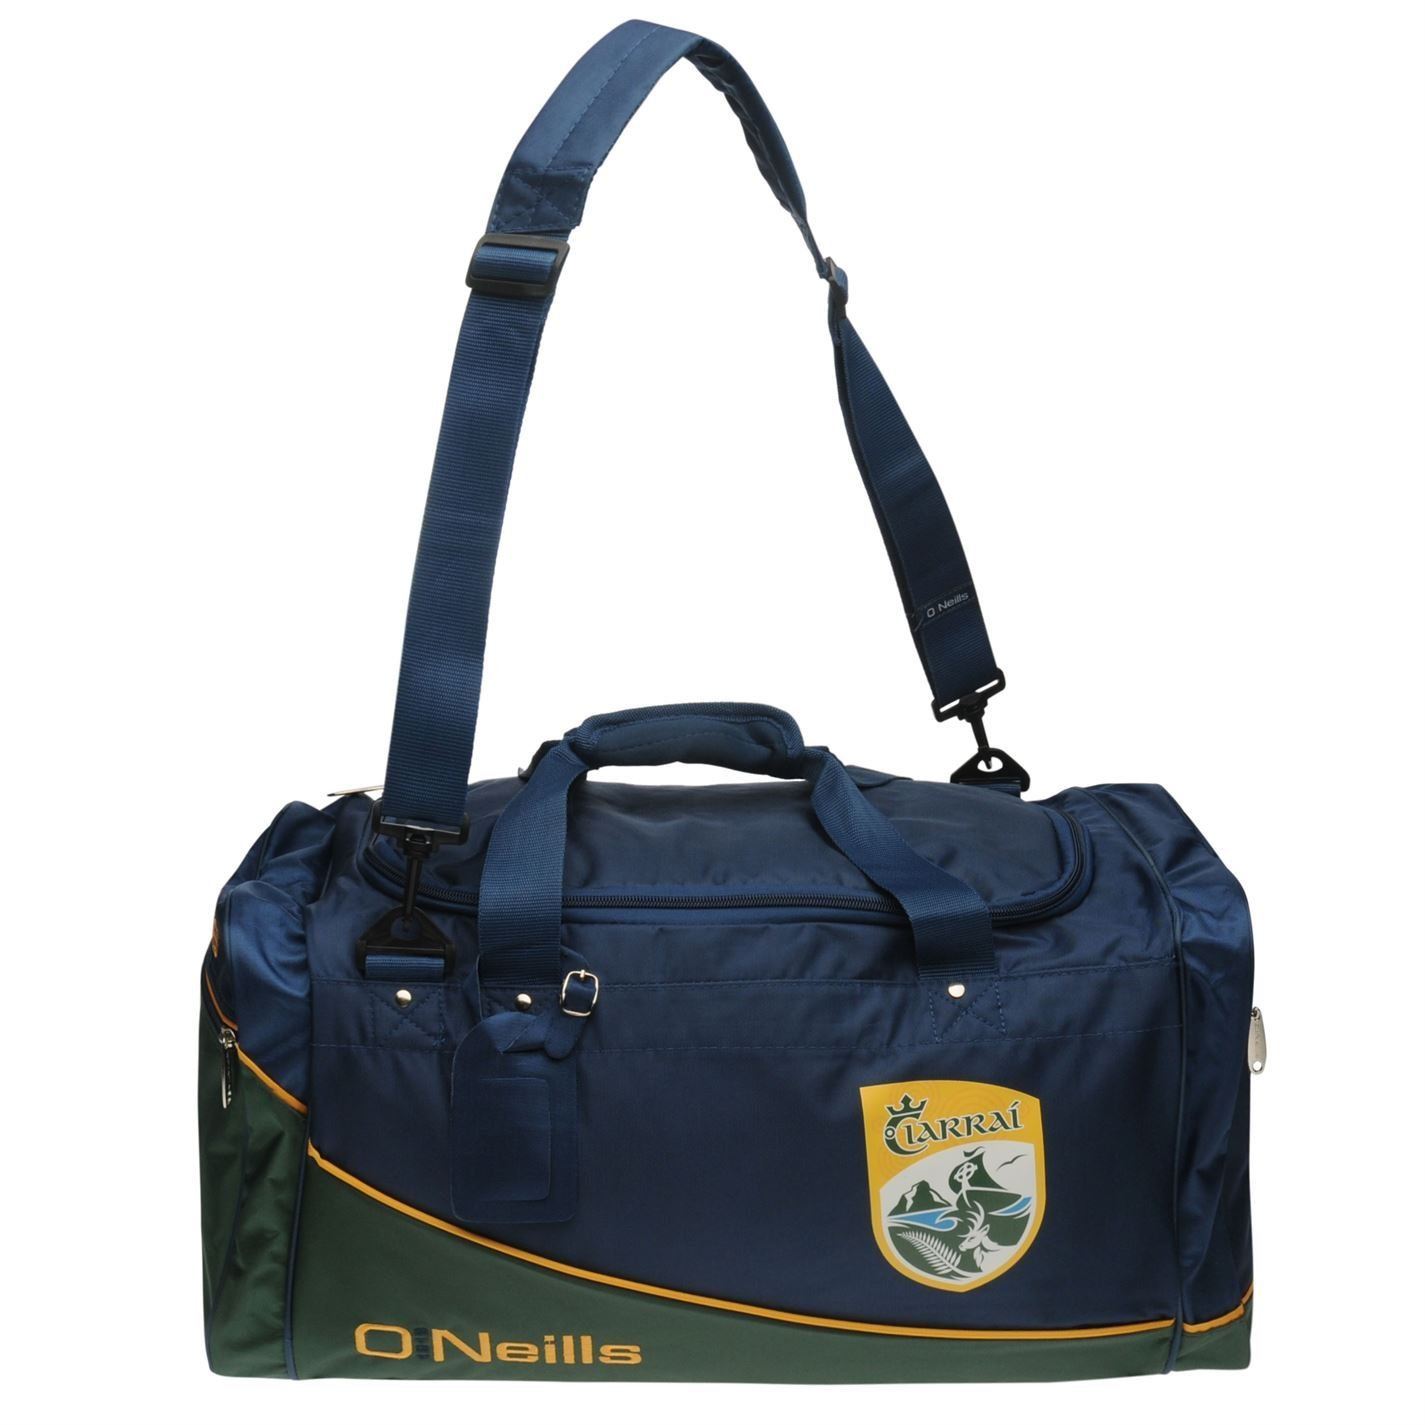 d9cbe0ddbabd46 O'Neills Kerry GAA Gaelic AA Burren Holdall Marine Sports Bag Carryall W:48  x H:28 x D:28 (cm): Amazon.co.uk: Luggage